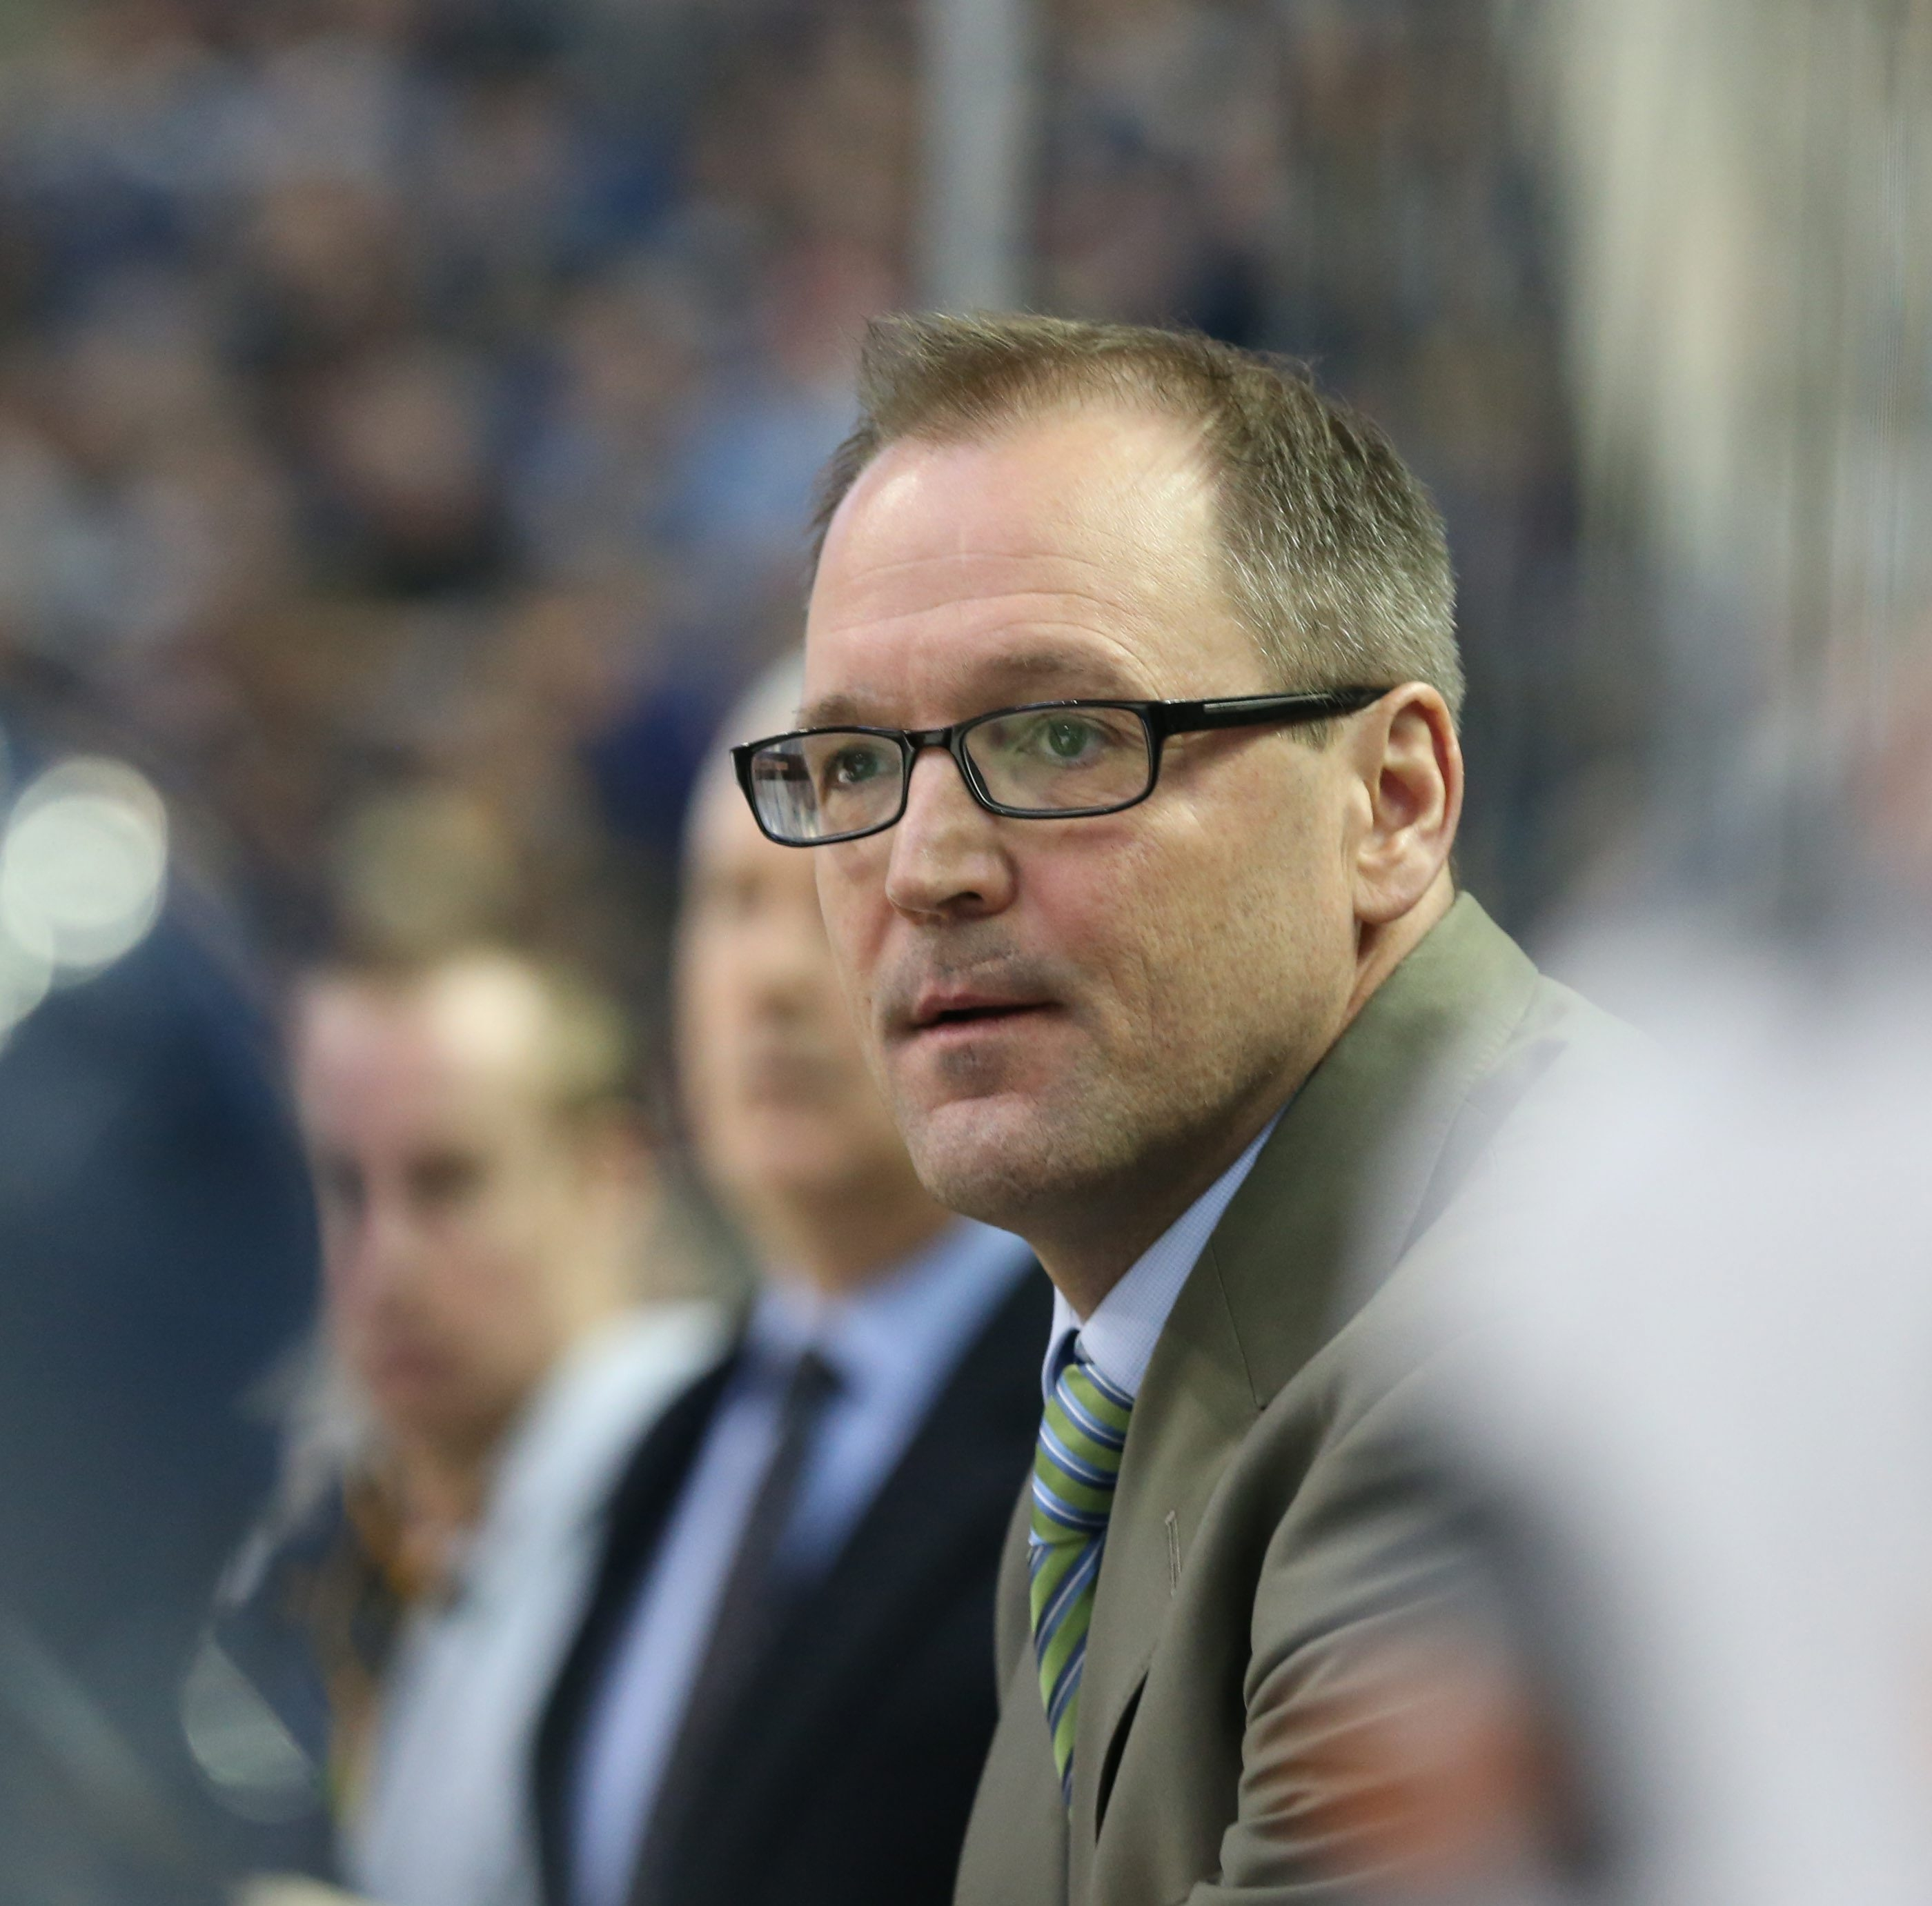 Buffalo Sabres head coach Dan Bylsma talks to his team on the bench in the first period at First Niagara Center in Buffalo,NY on Sunday, Feb. 21, 2016.  (James P. McCoy/ Buffalo News)